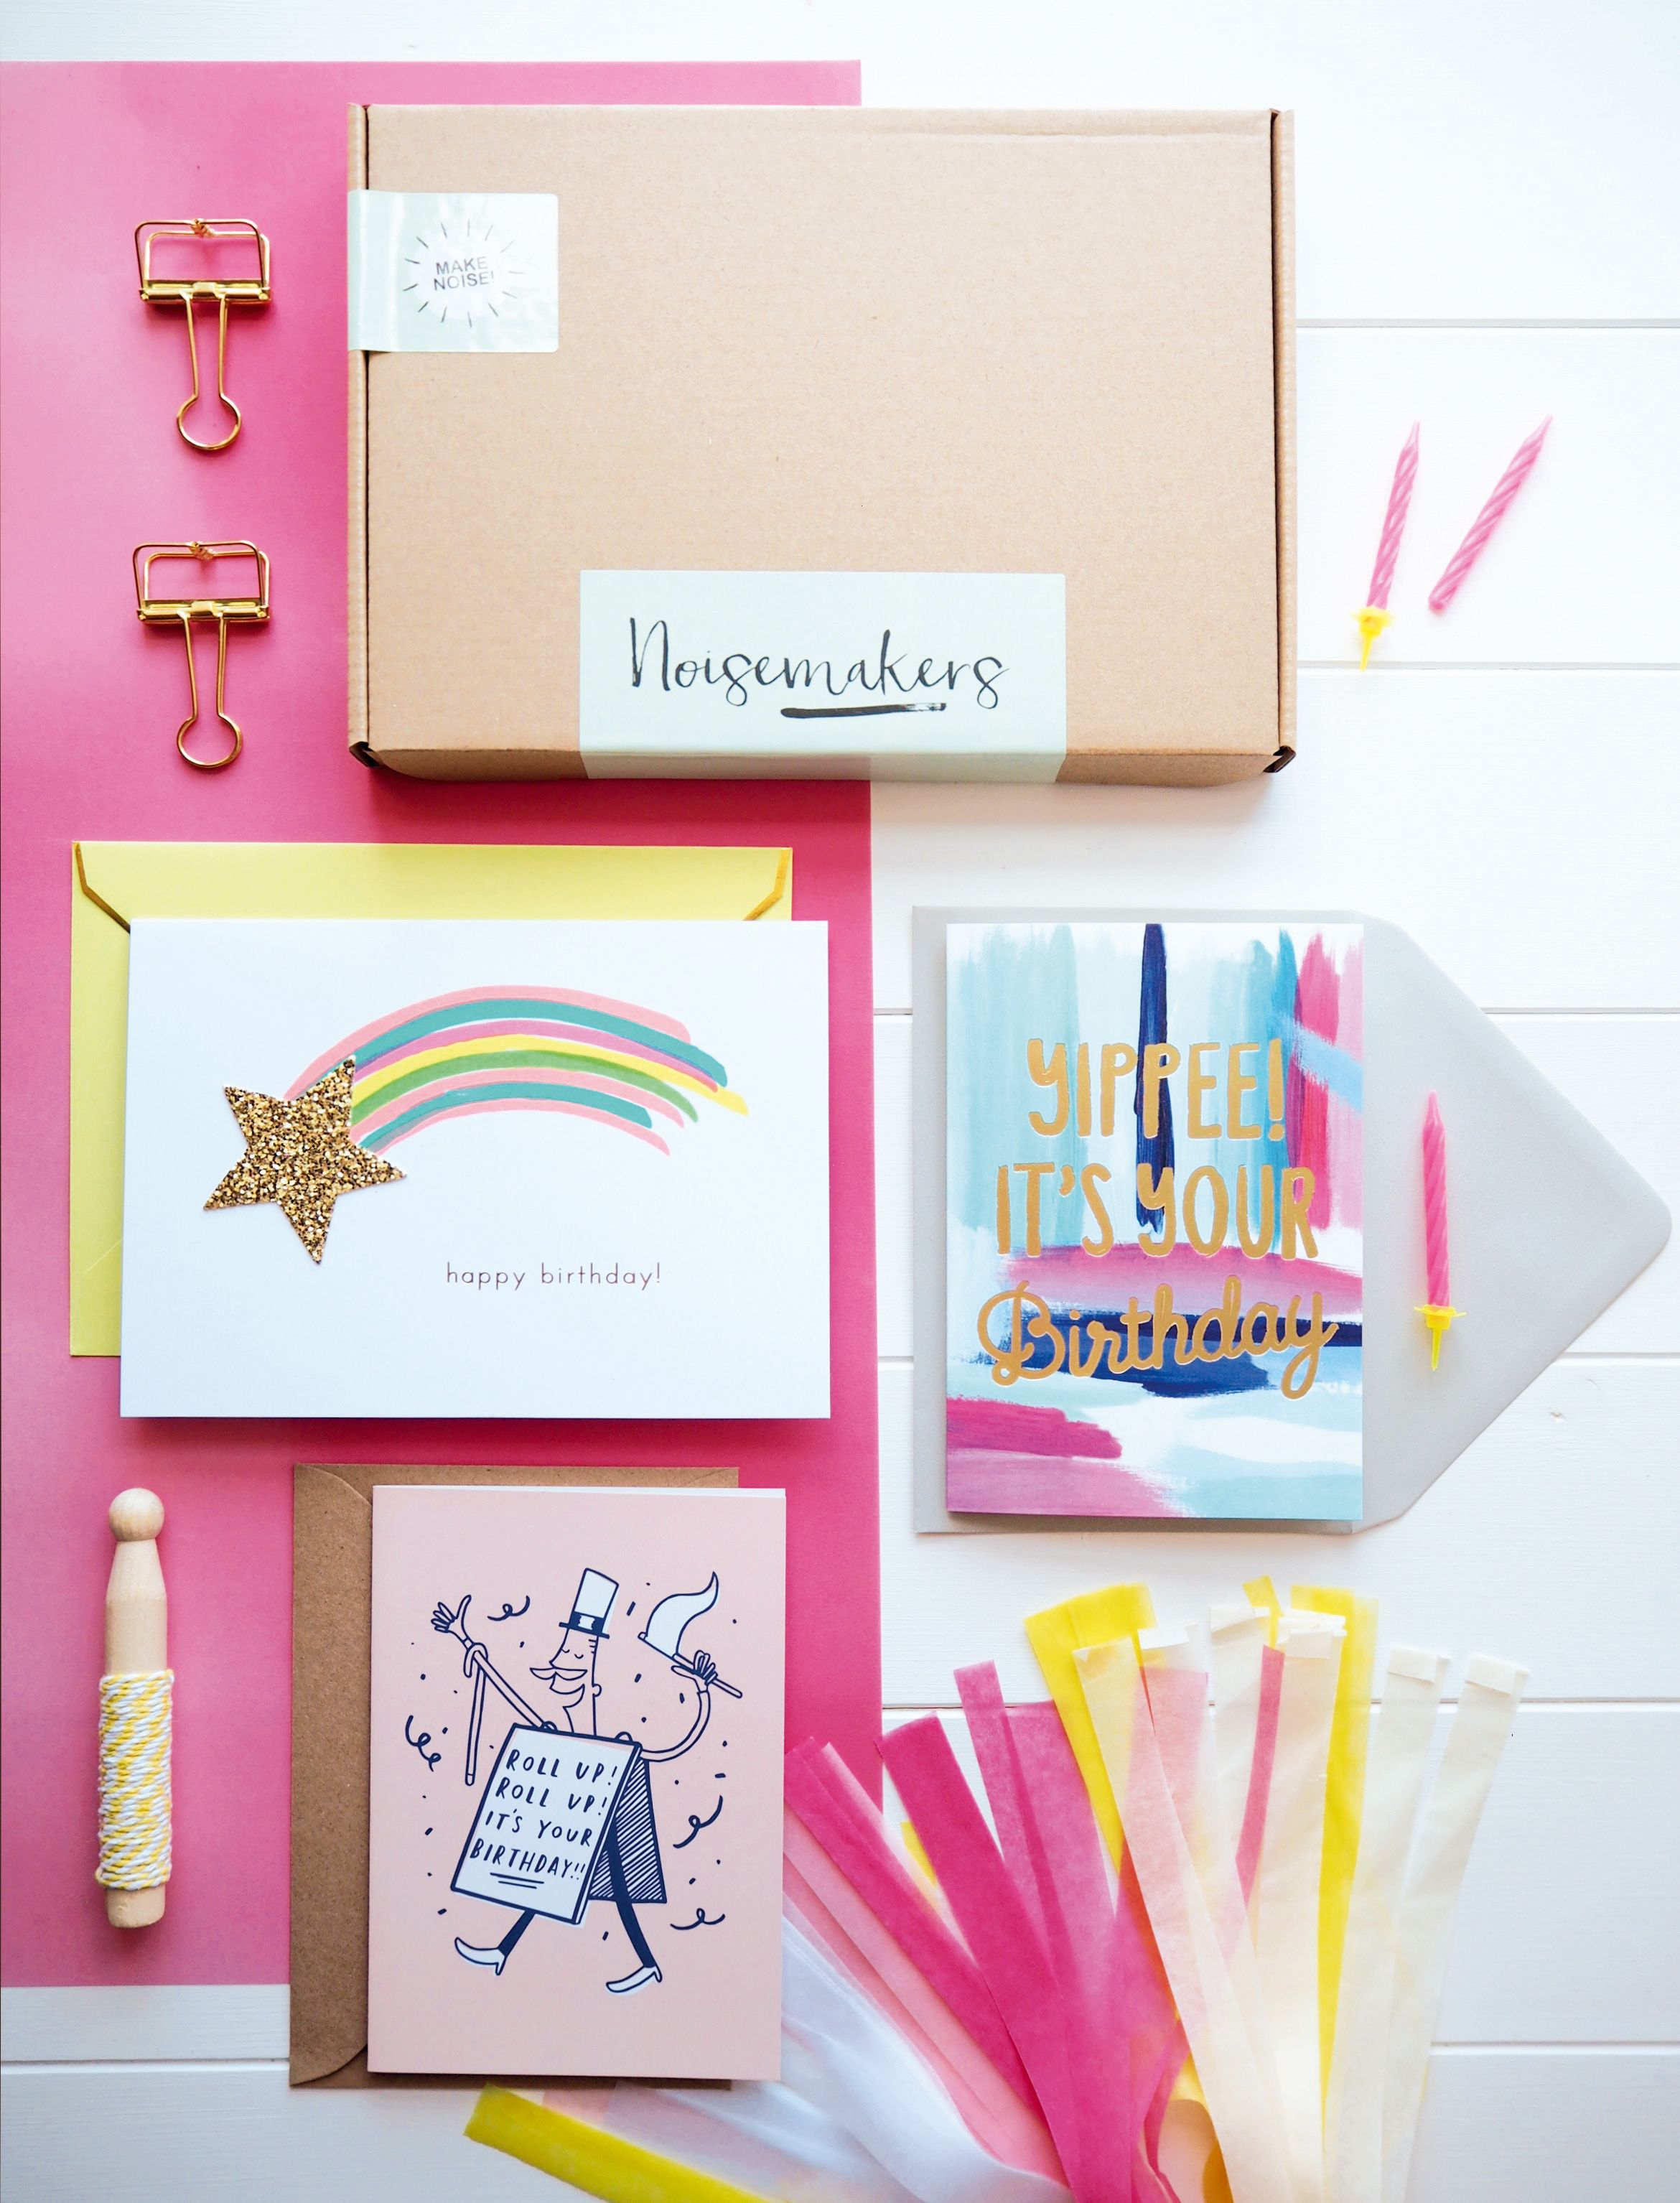 Noisemakers Club a birthday and greetings card subscription box